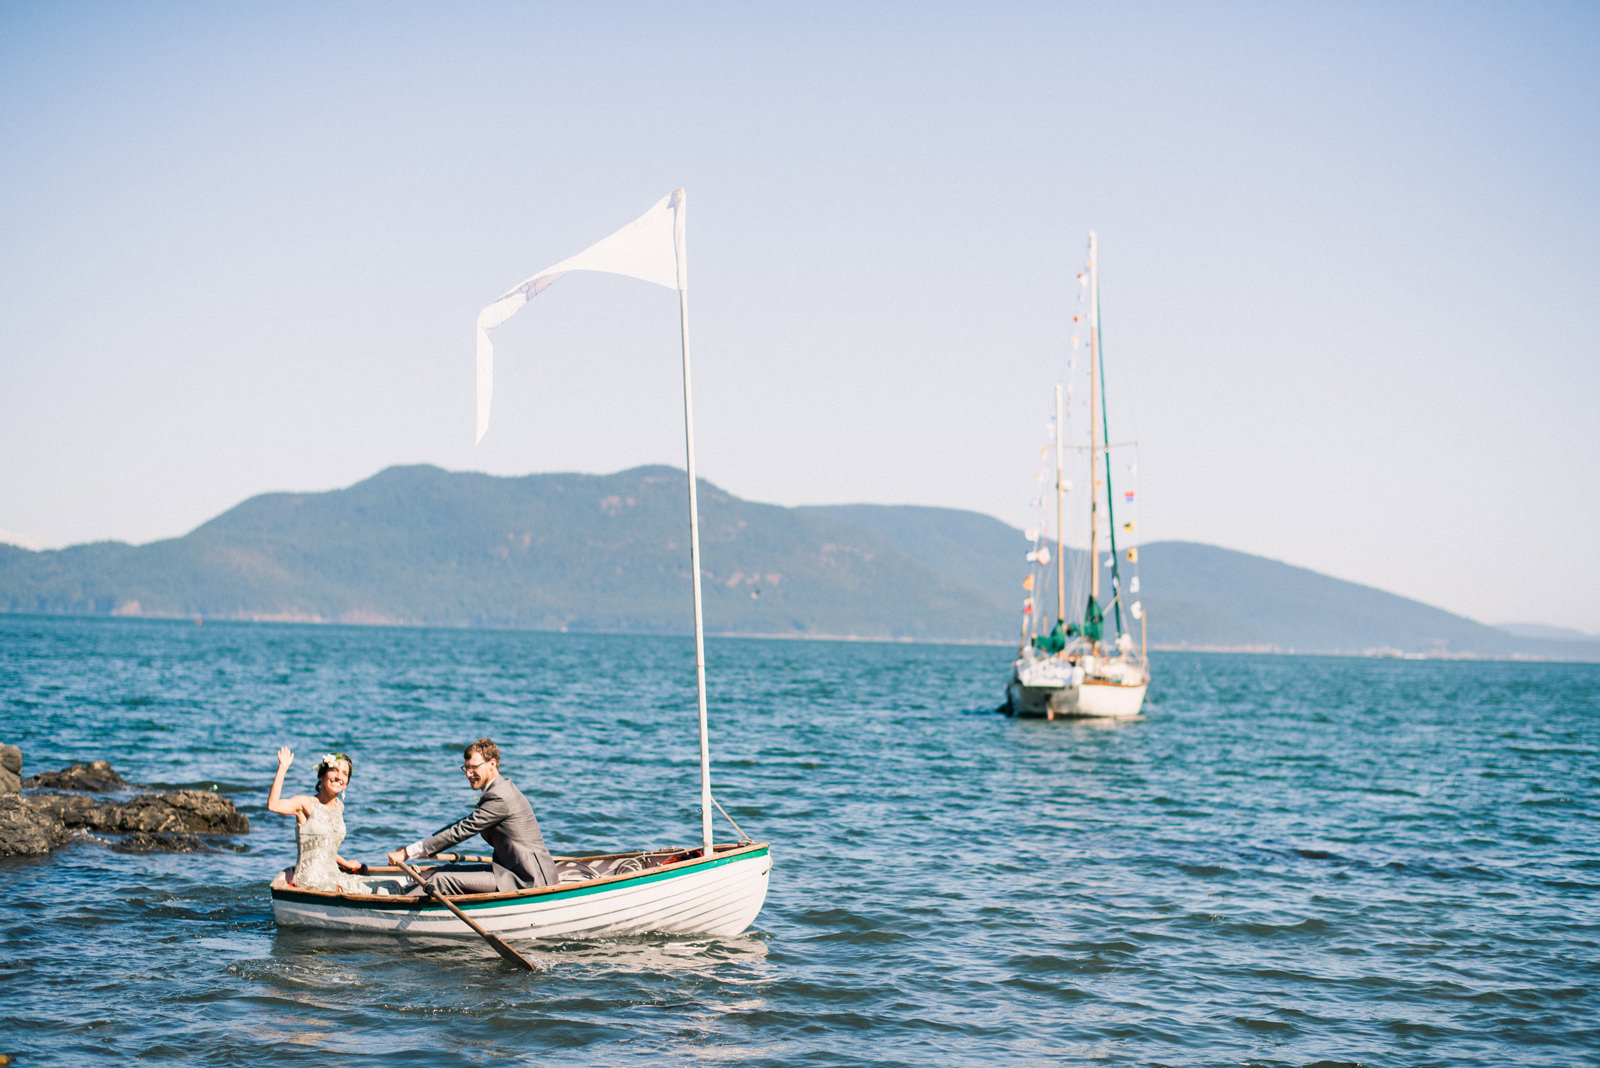 184-orcas-island-wedding-with-a-sailboat-by-san-juan-islands-wedding-photographer.jpg